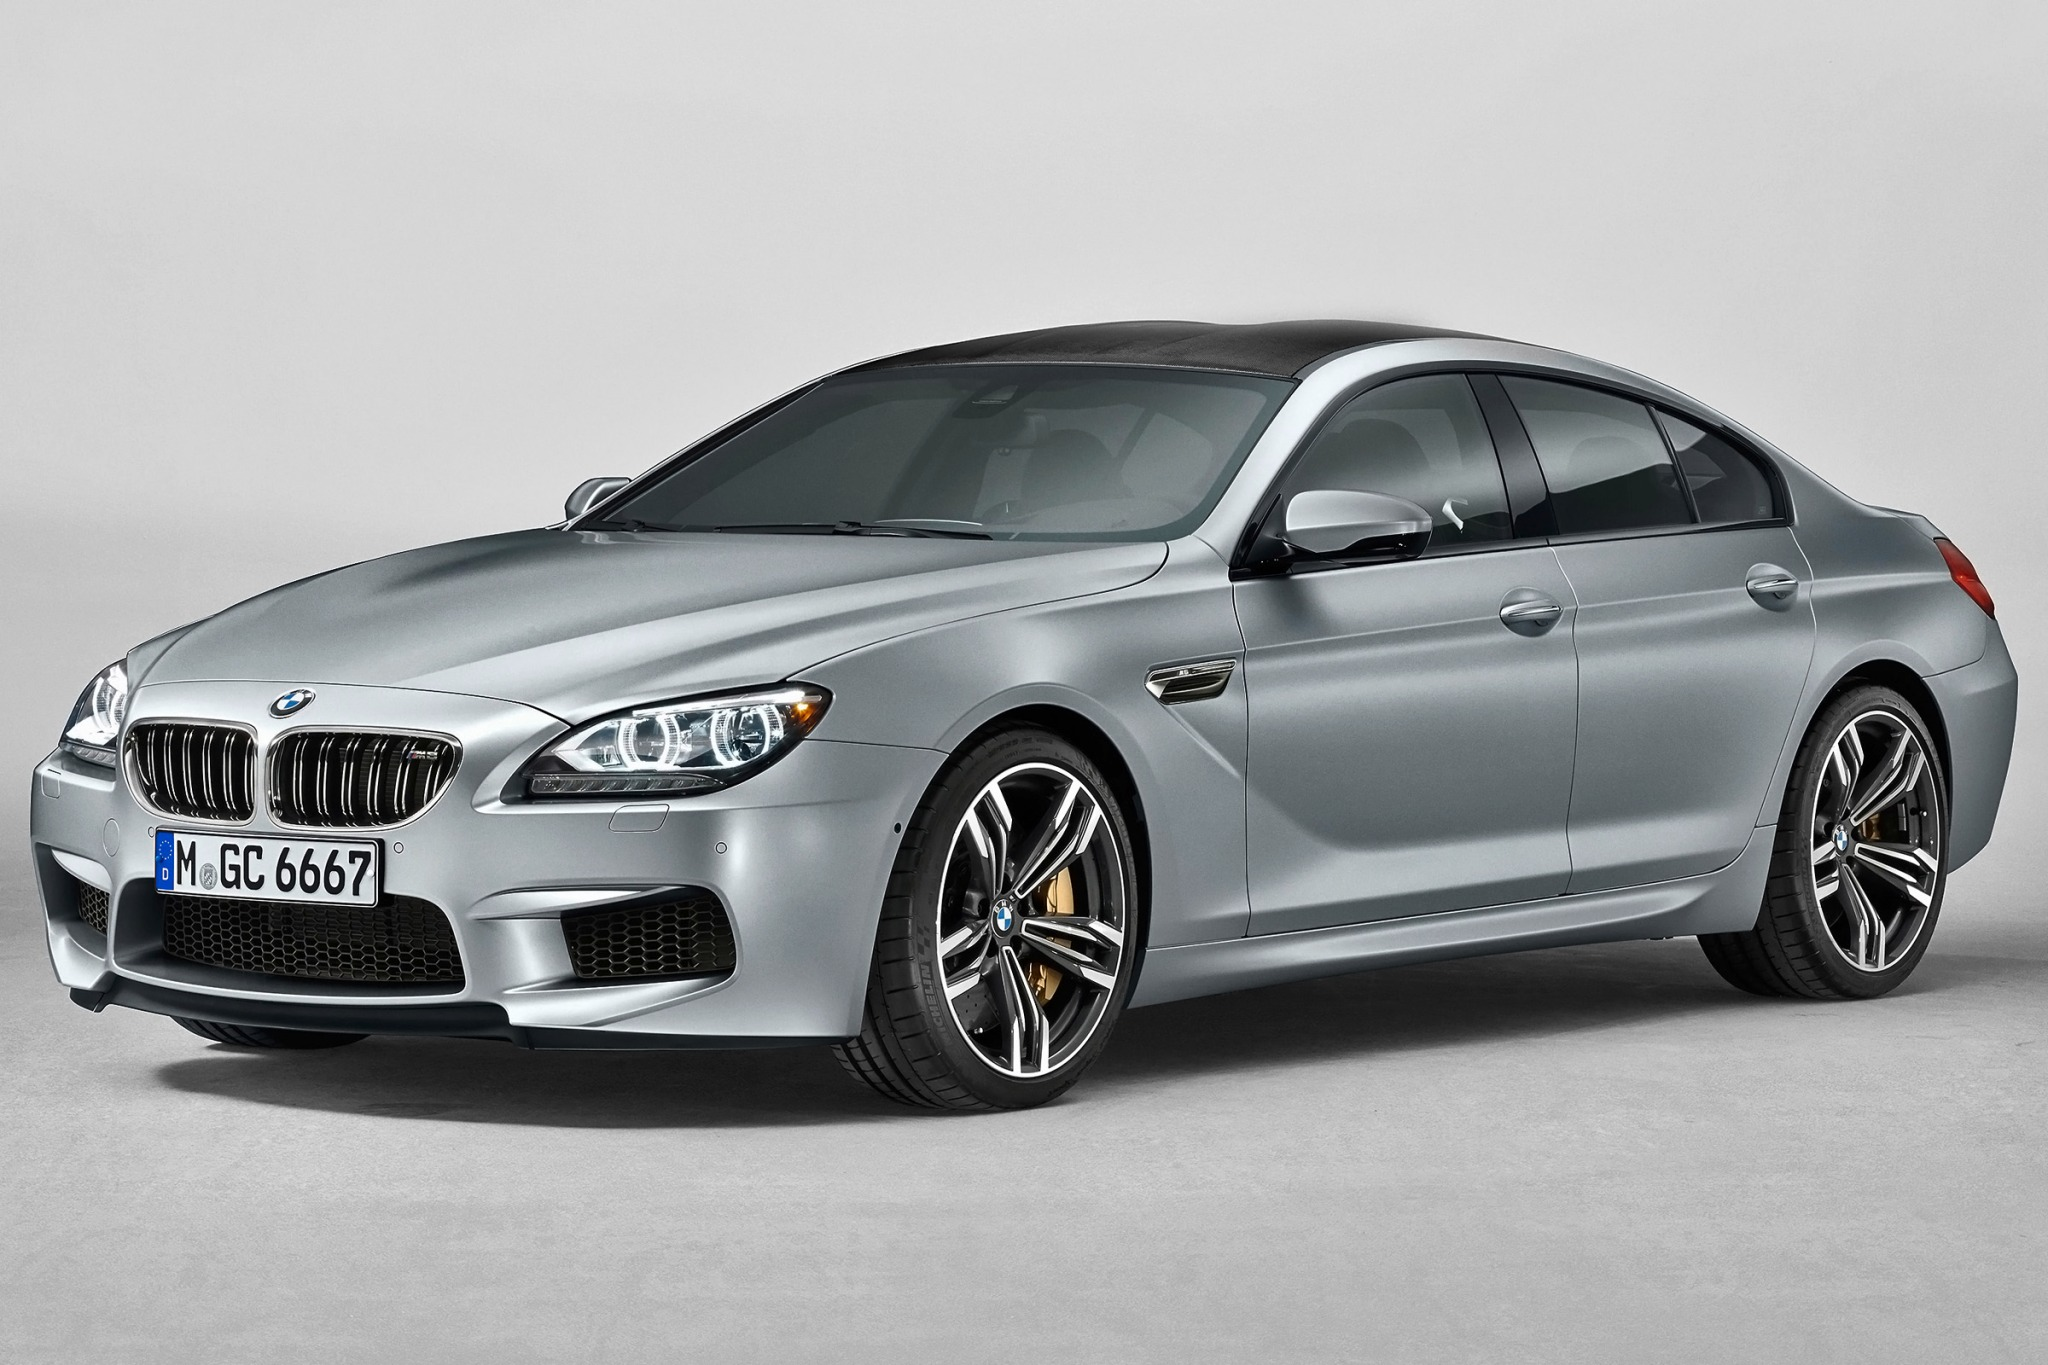 2015 BMW M6 Gran Coupe - Information and photos - ZombieDrive